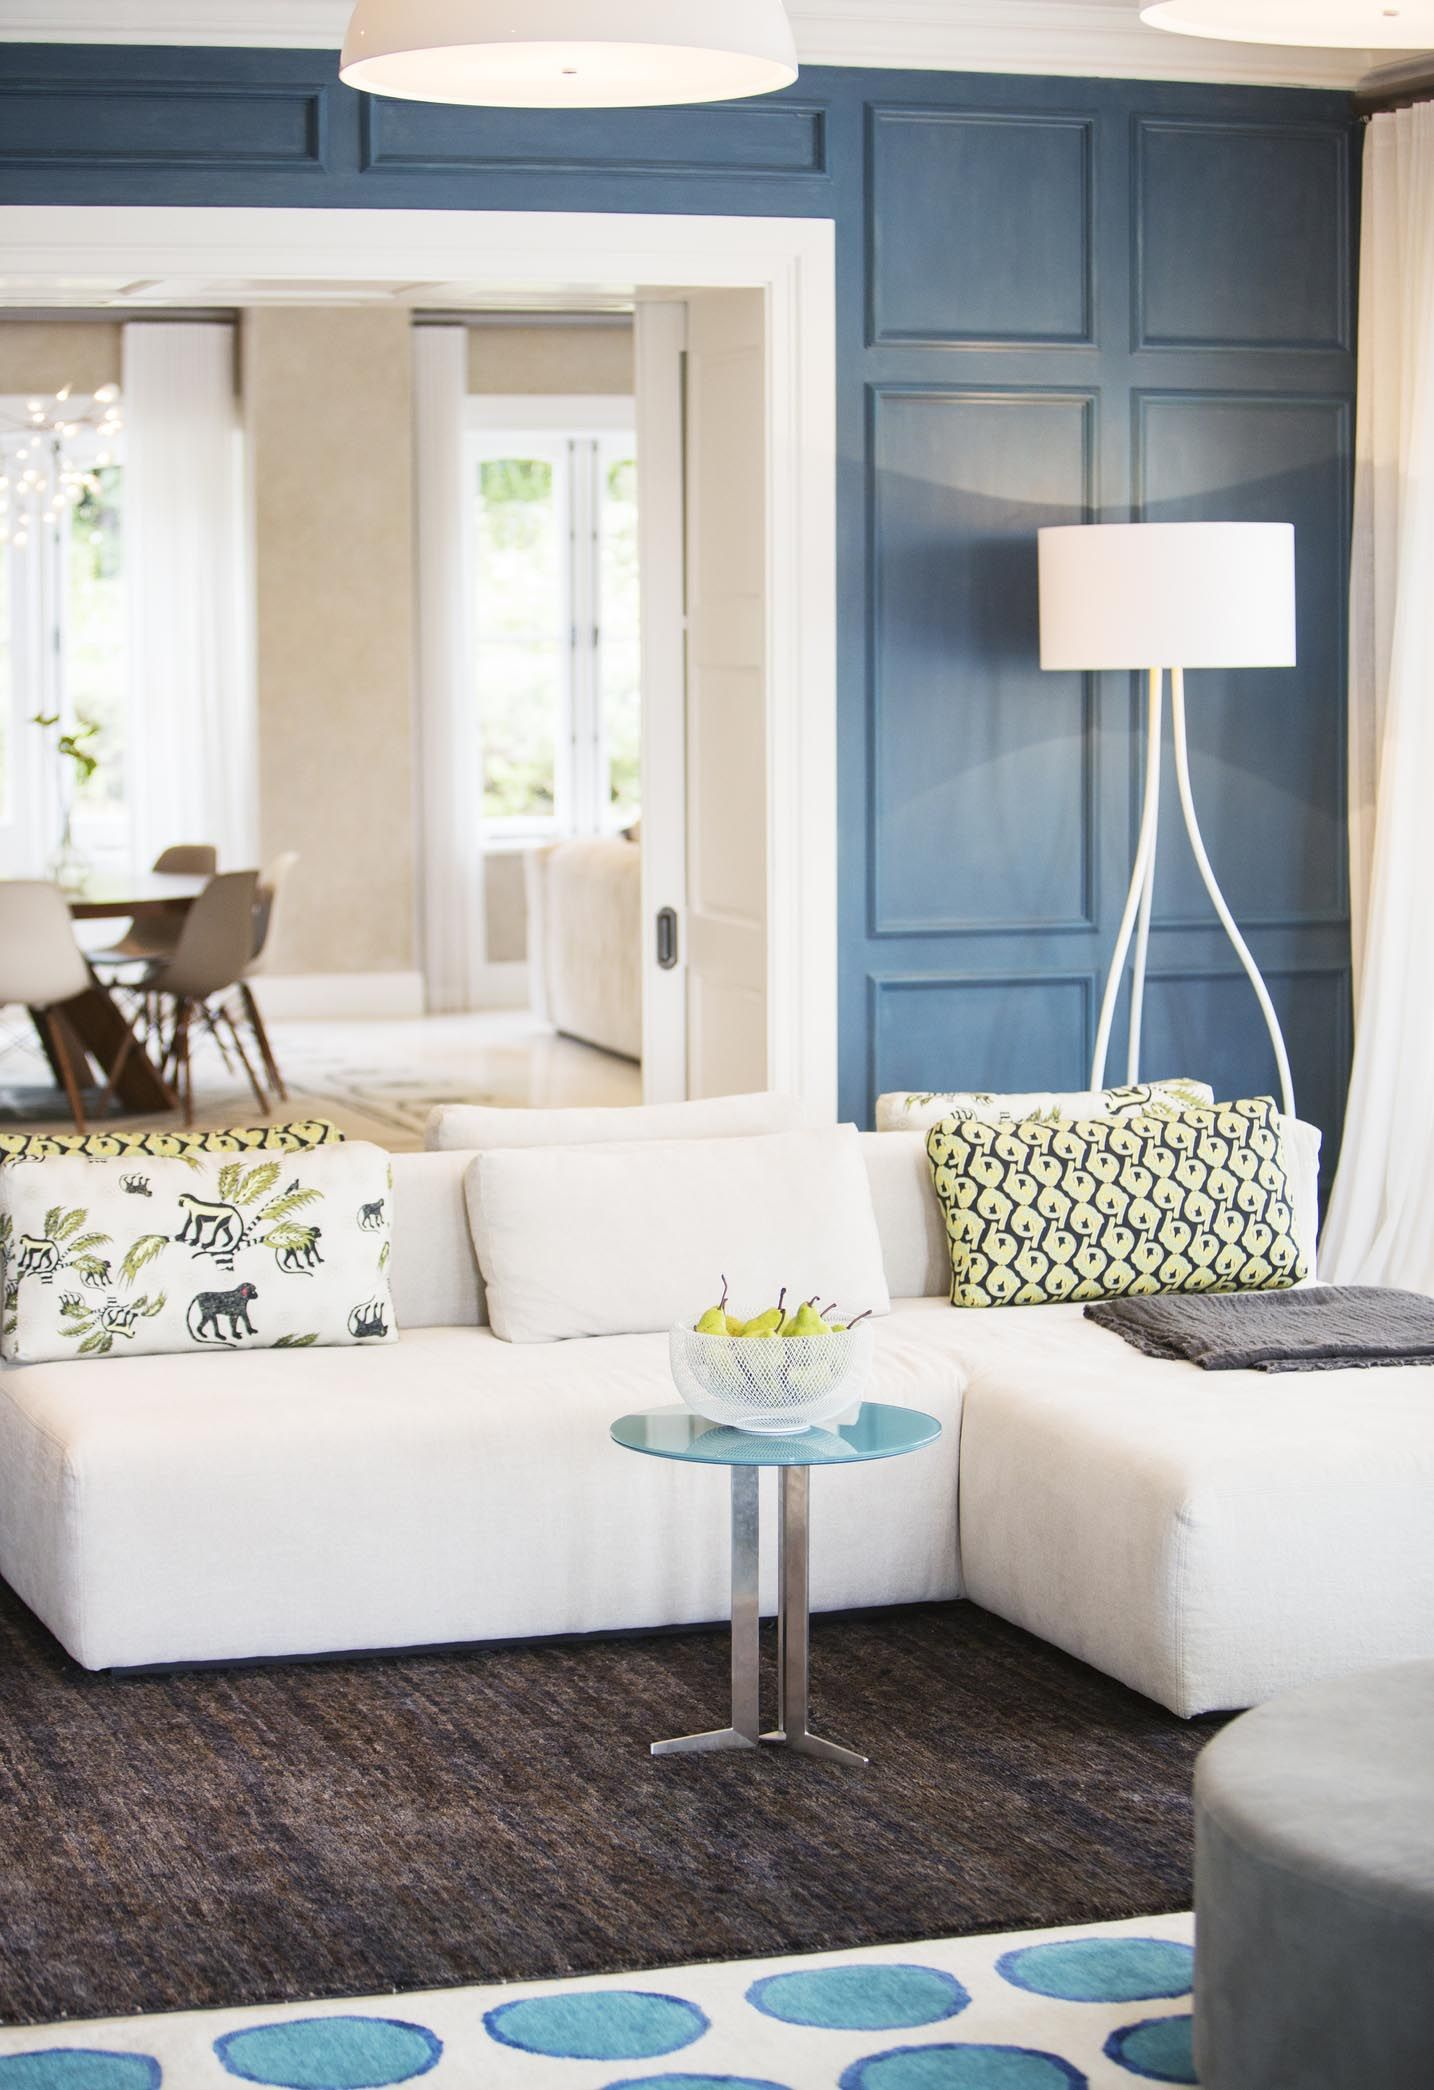 Living Room Decorating Mistakes - Interior Designer Advice